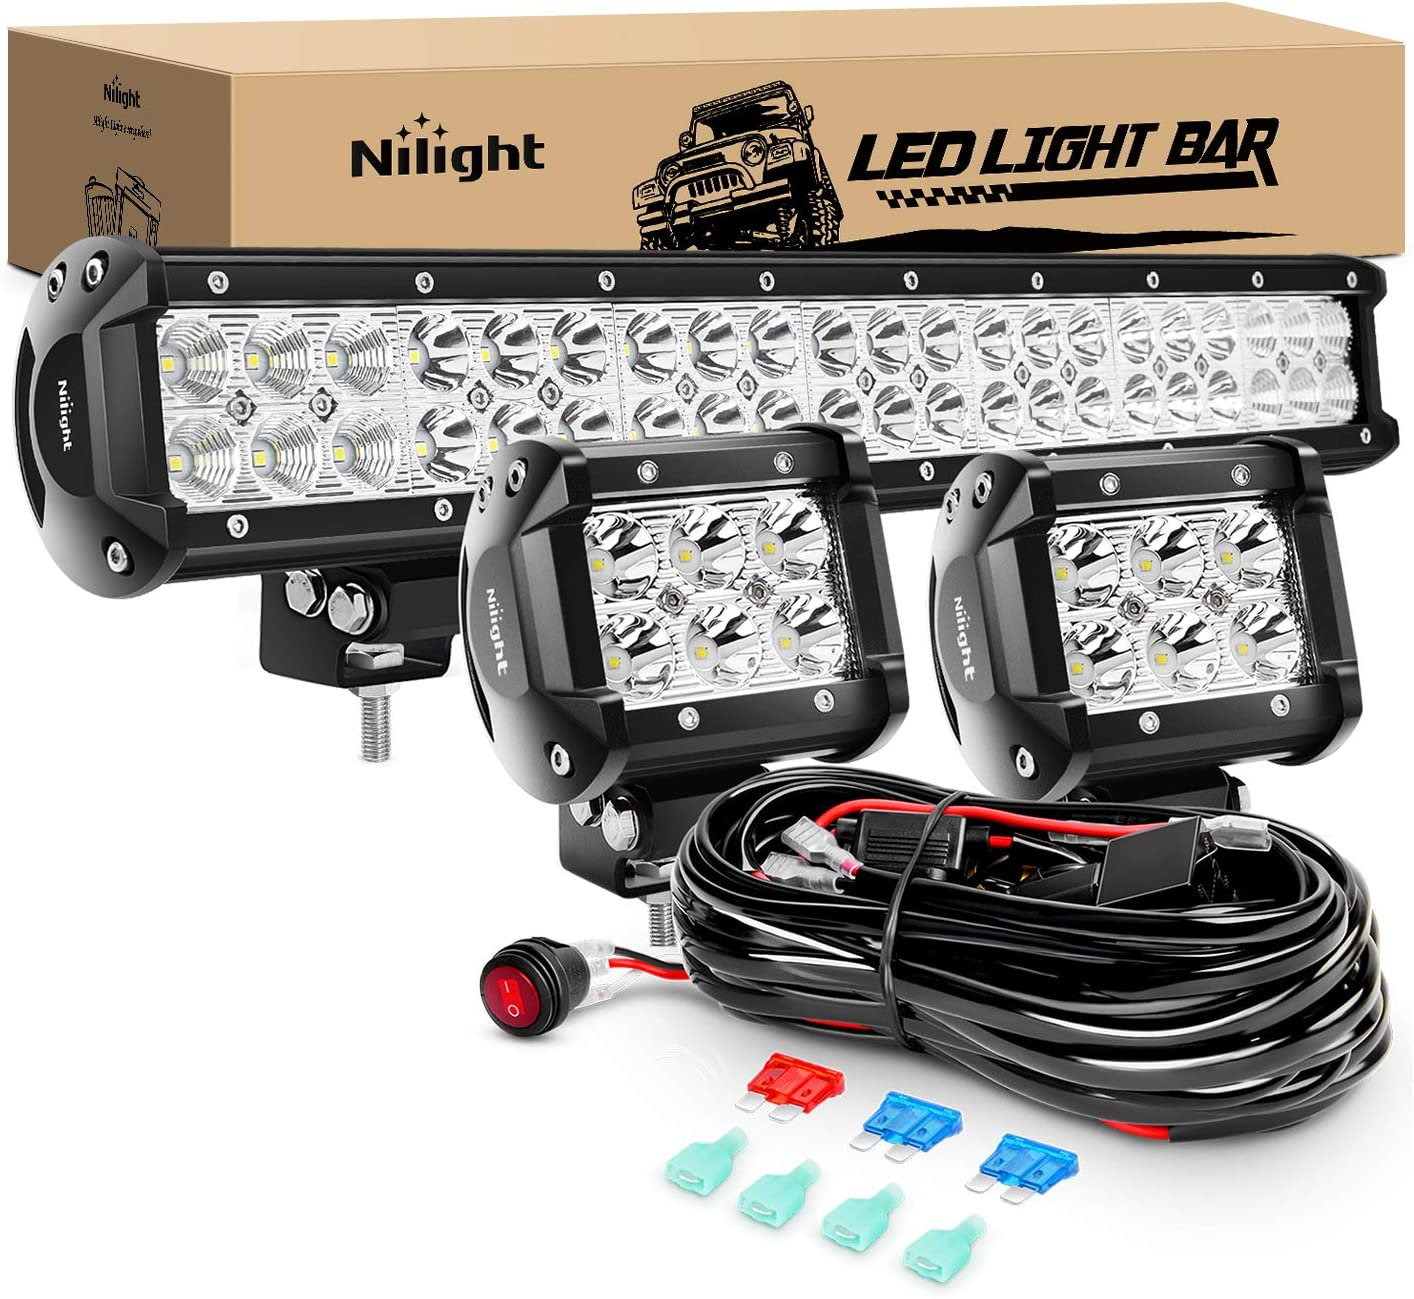 Nilight - ZH002 20Inch 126W Spot Flood Combo Led Off Road Led Light Bar 2PCS 18w 4Inch Spot LED Pods With 16AWG Wiring Harness Kit-3 Lead, 2 Years Warranty